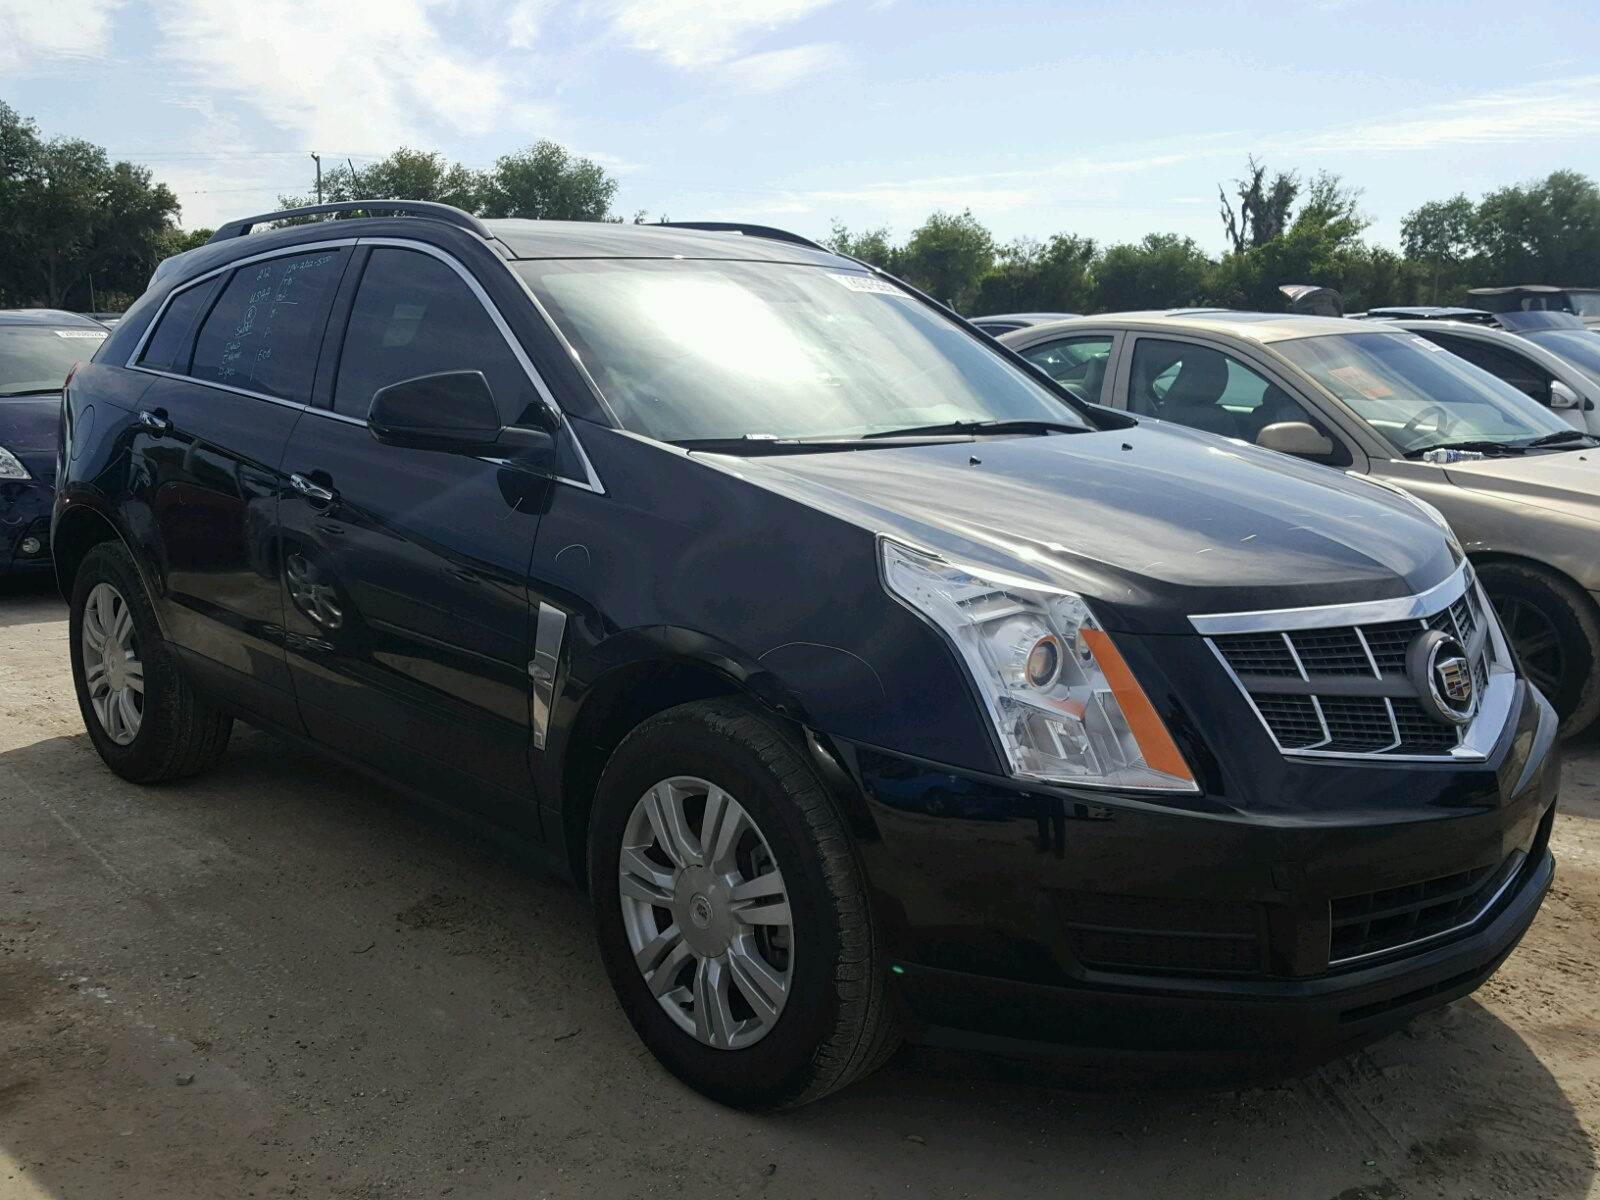 see for sale used collection click full buford photo suv fwd performance srx to cadillac ga size